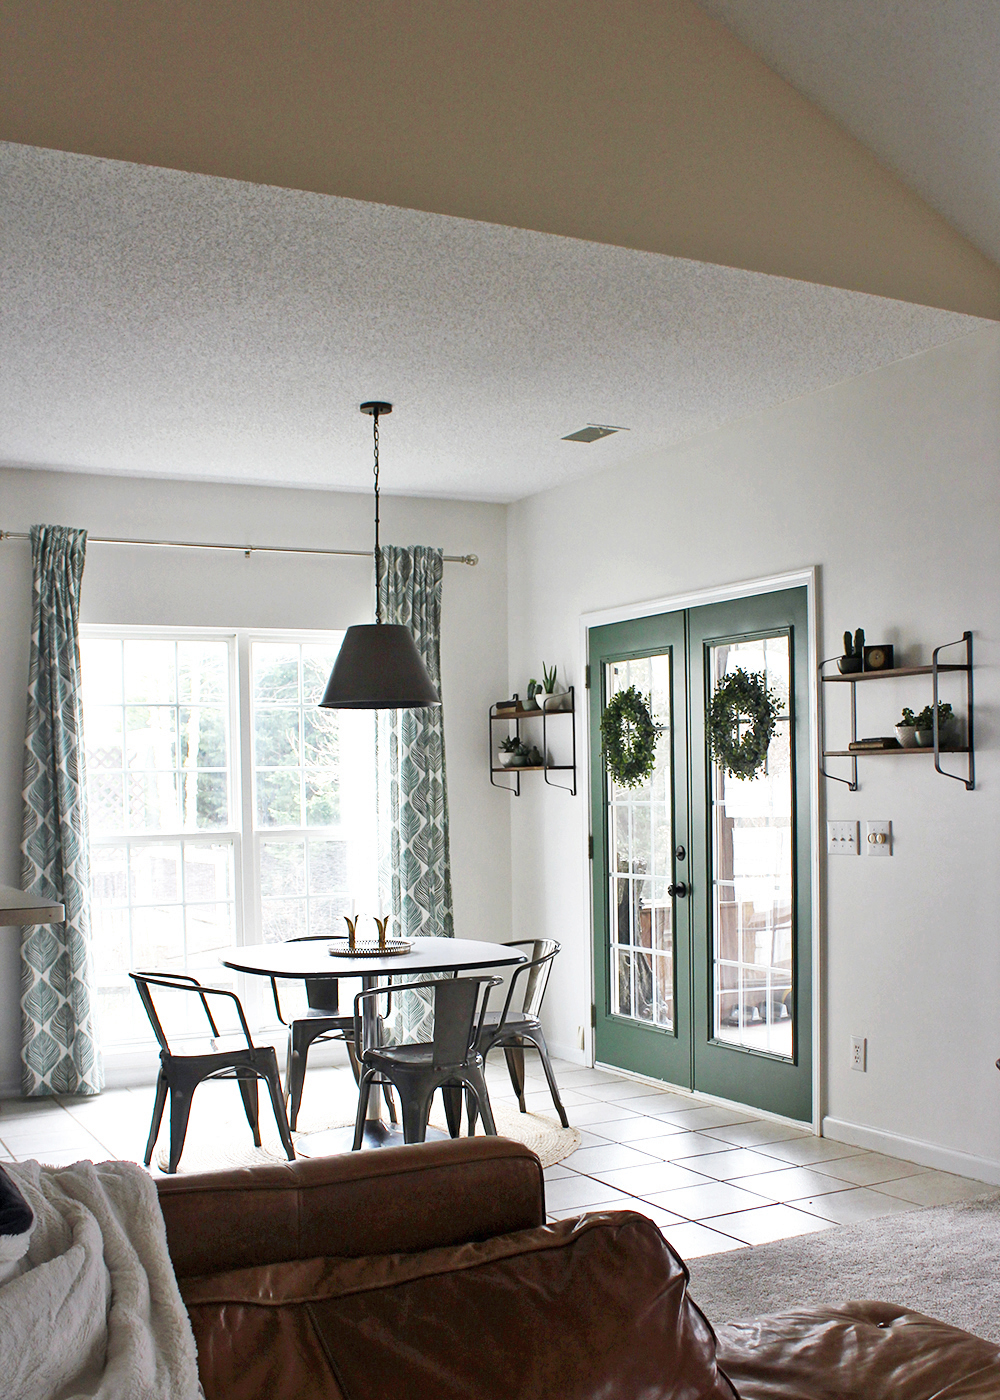 Before & After Global-Inspired breakfast nook on a small budget